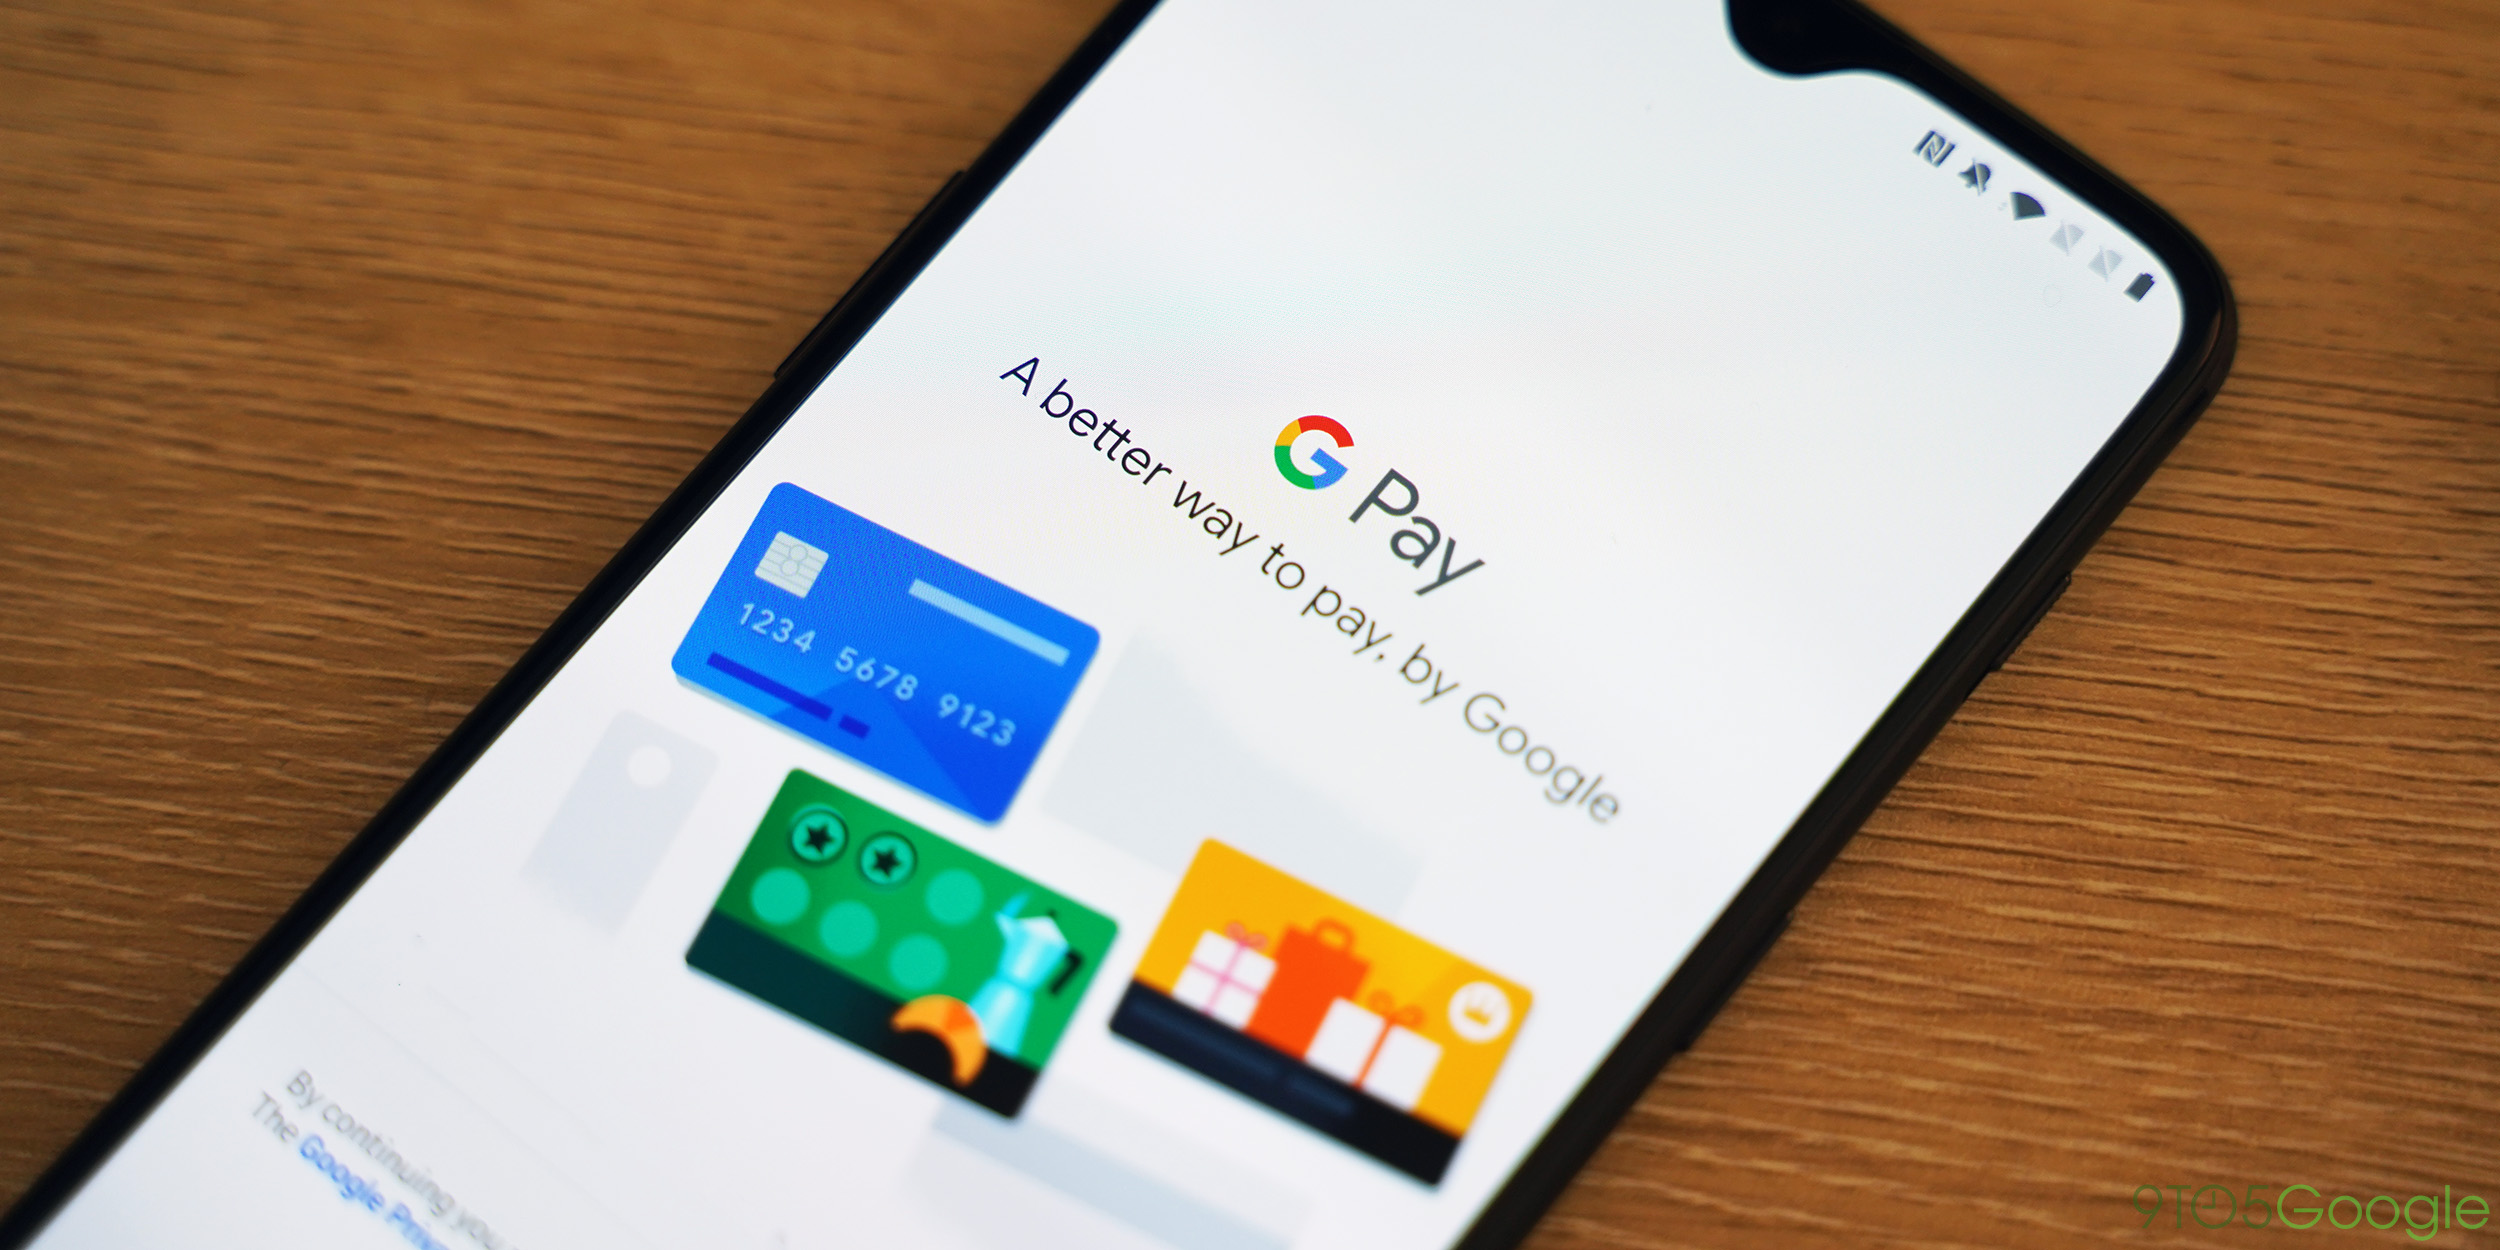 11 further US banks get Google Pay support for March 2019